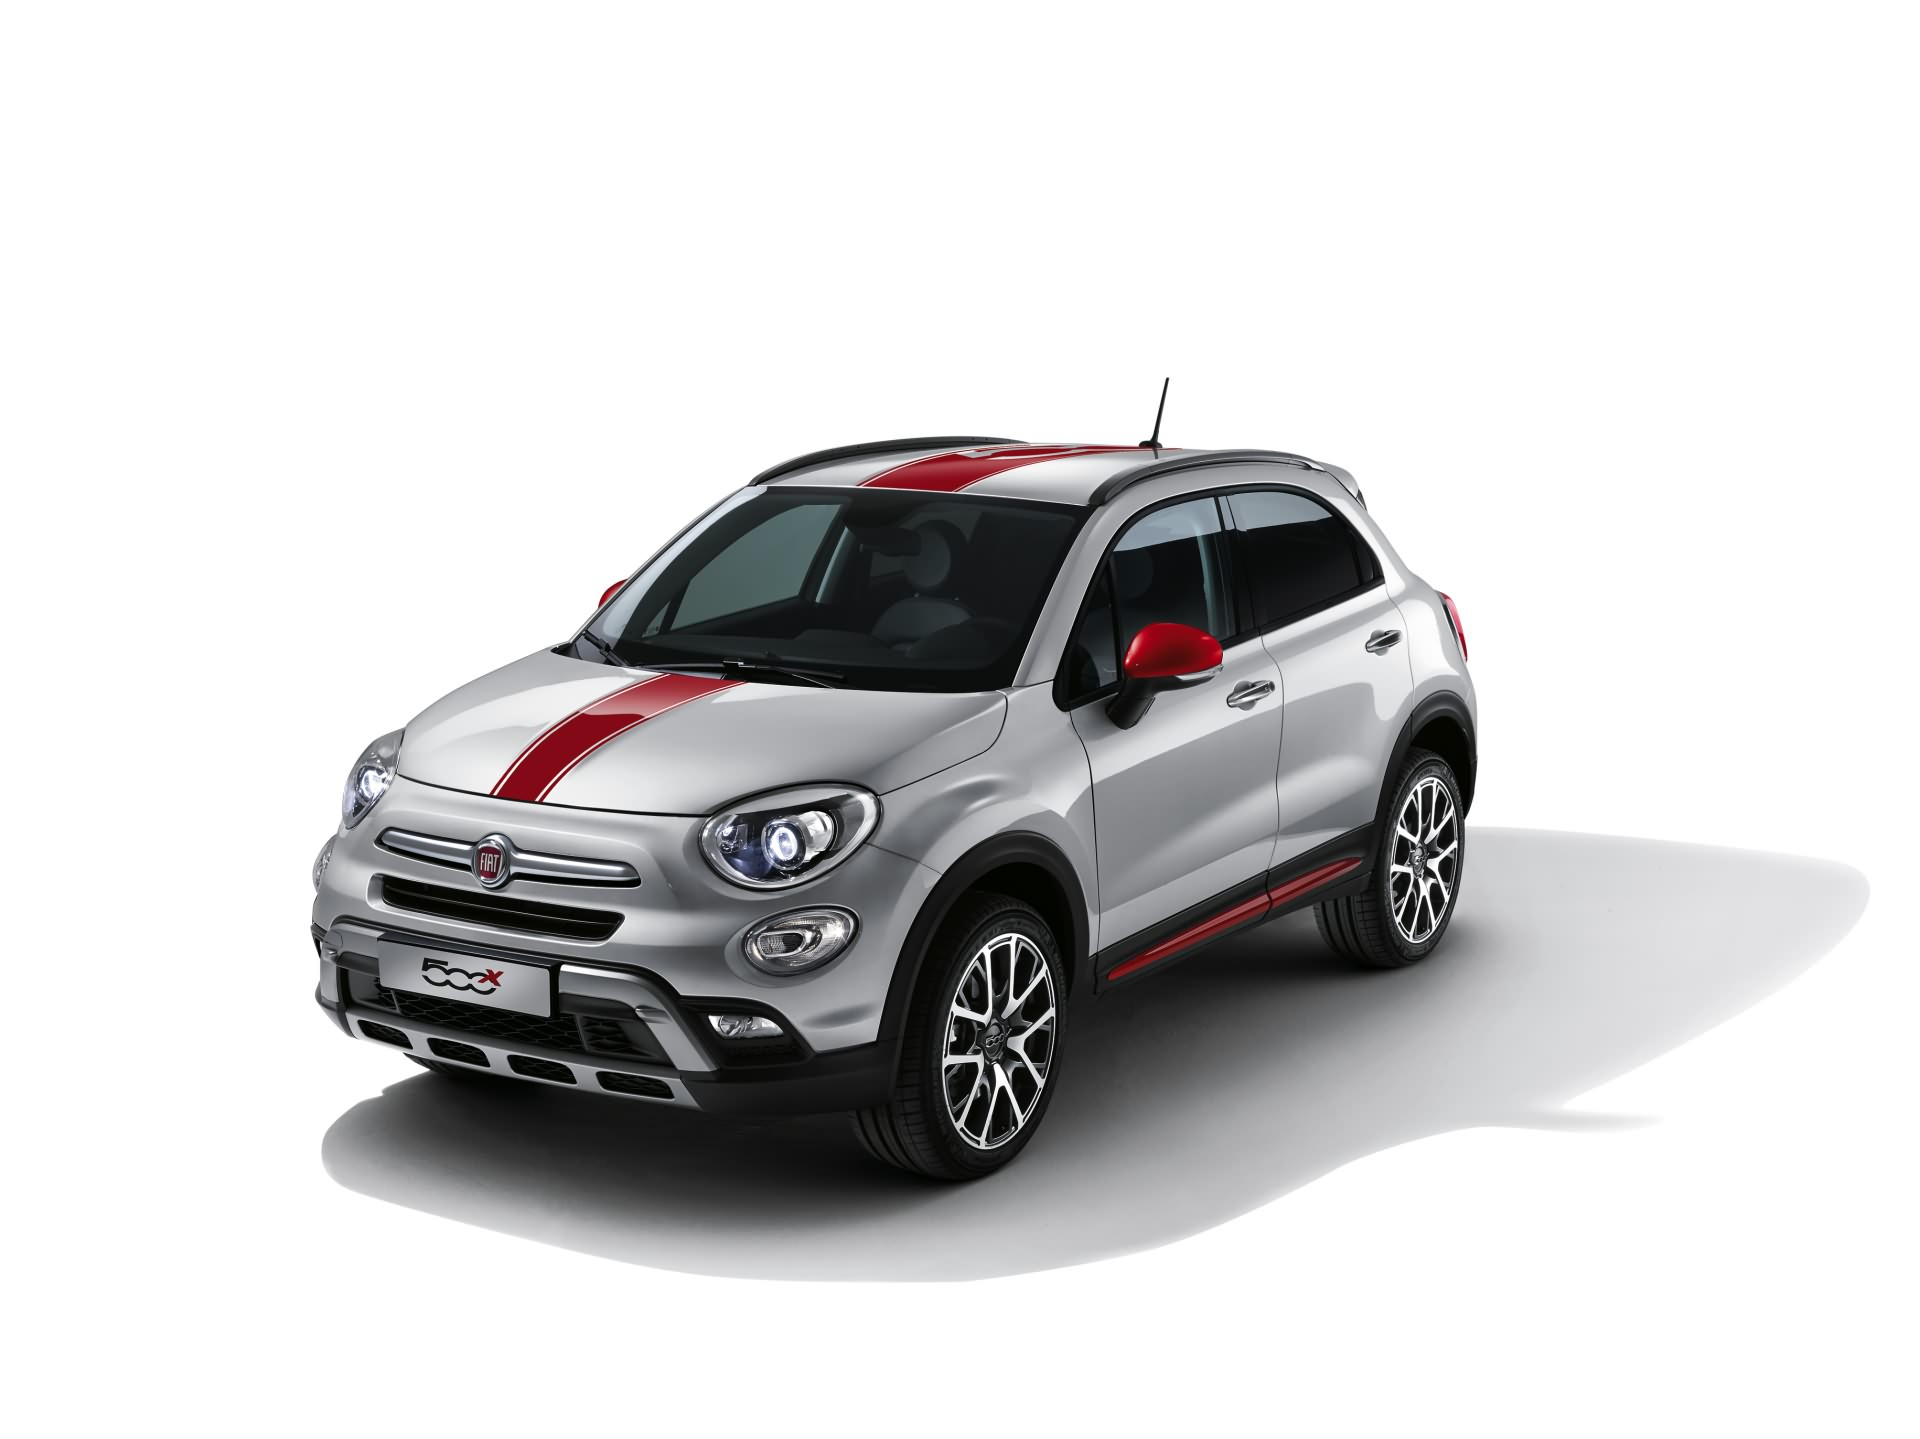 modellbeschreibung ber den fiat 500x. Black Bedroom Furniture Sets. Home Design Ideas